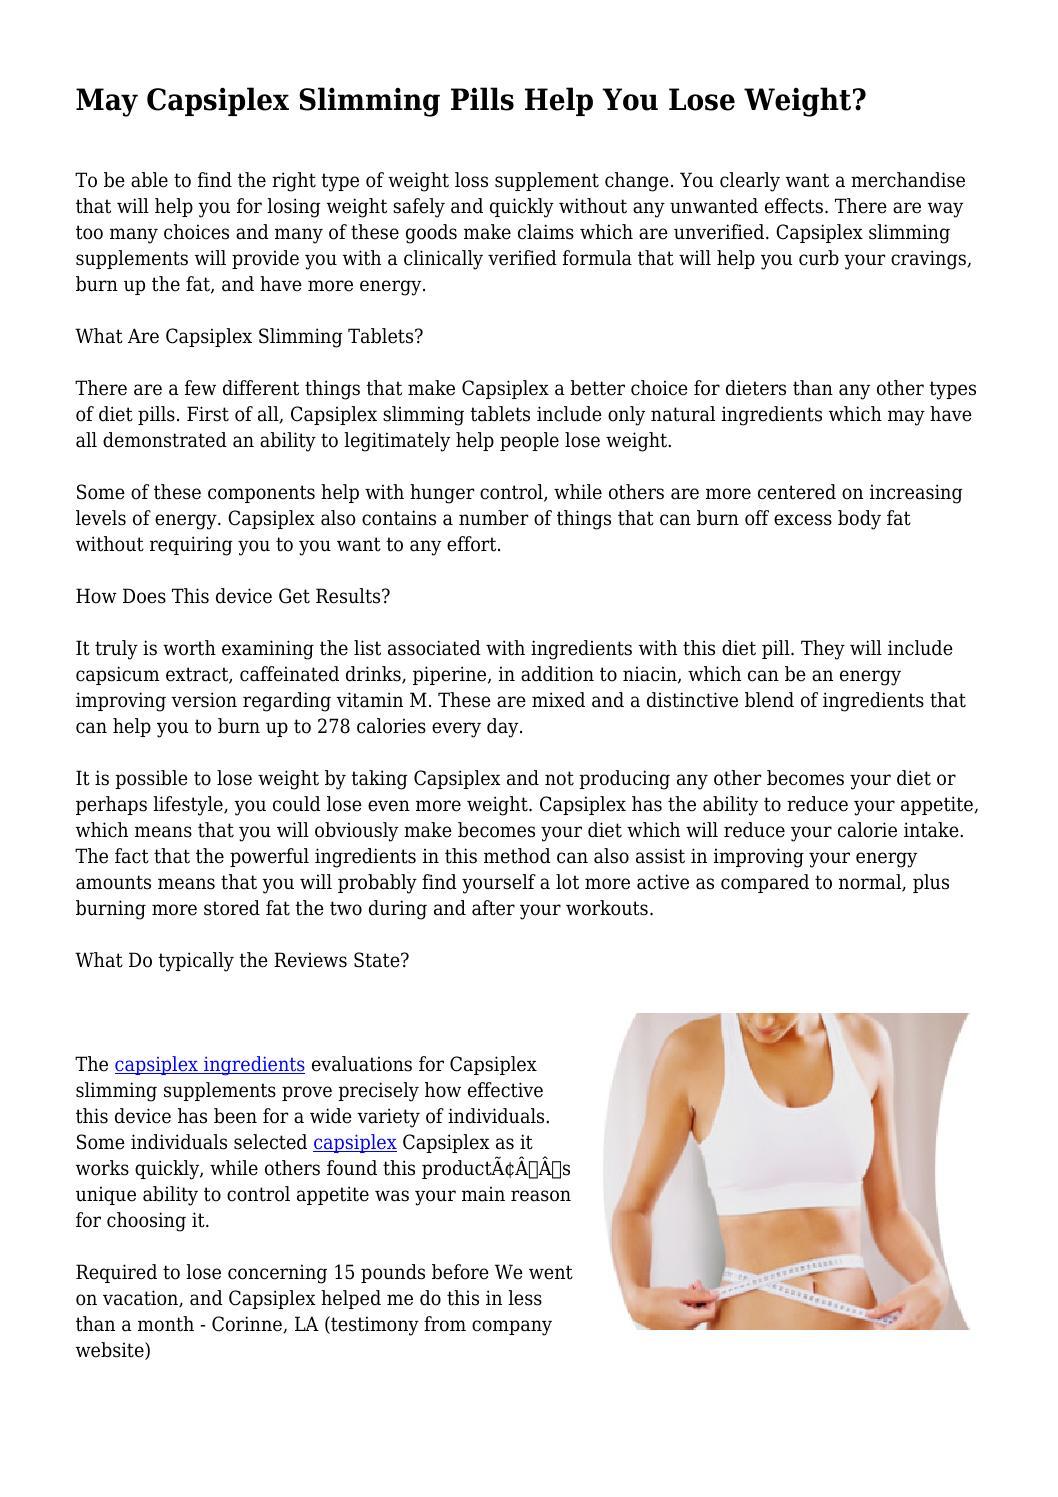 May Capsiplex Slimming Pills Help You Lose Weight By Yellowgun1300